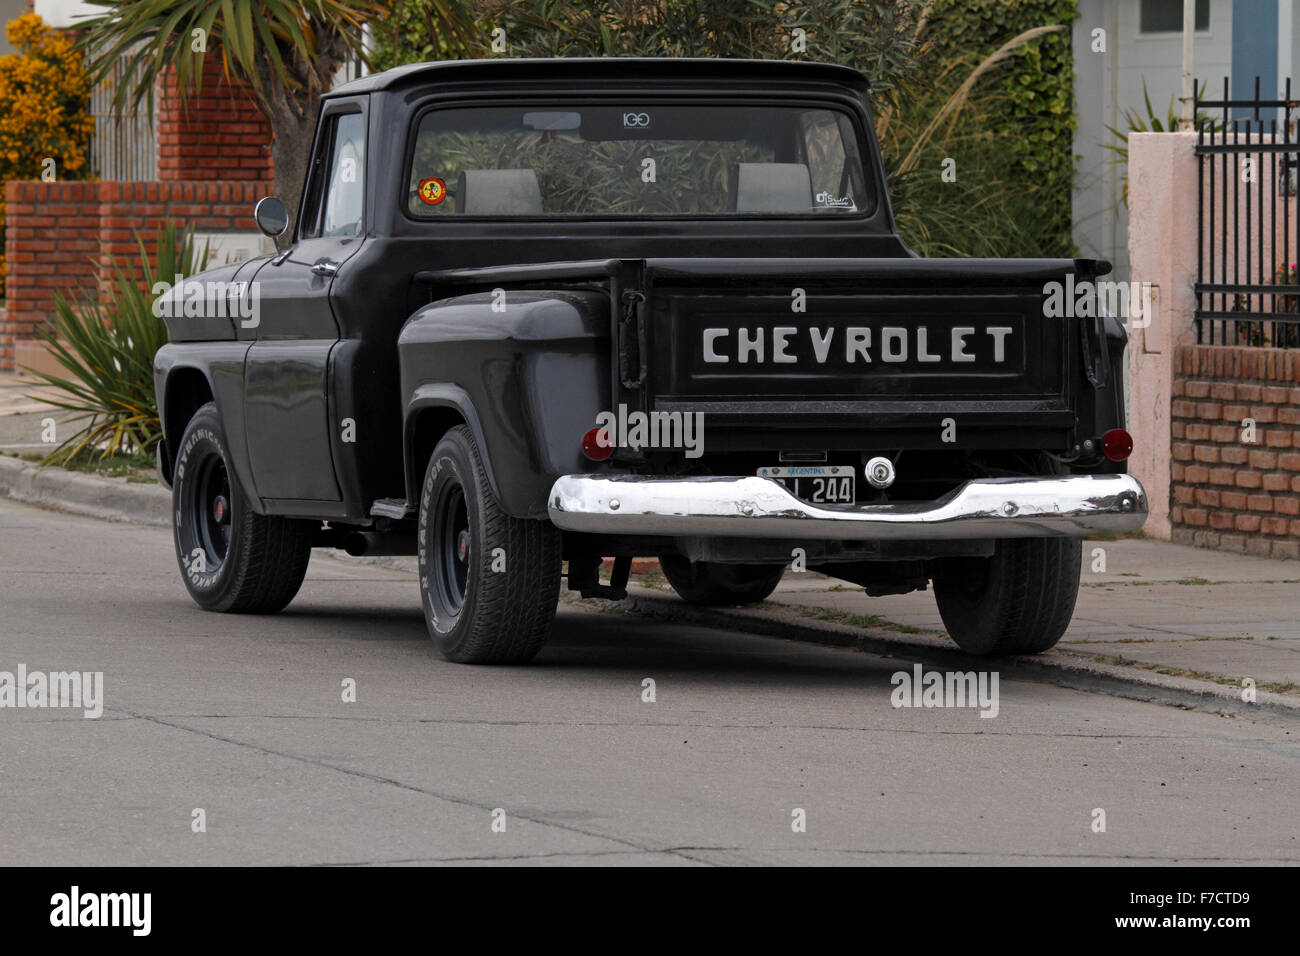 Old Black Chevrolet pick up, Registered in Argentina Stock Photo ...